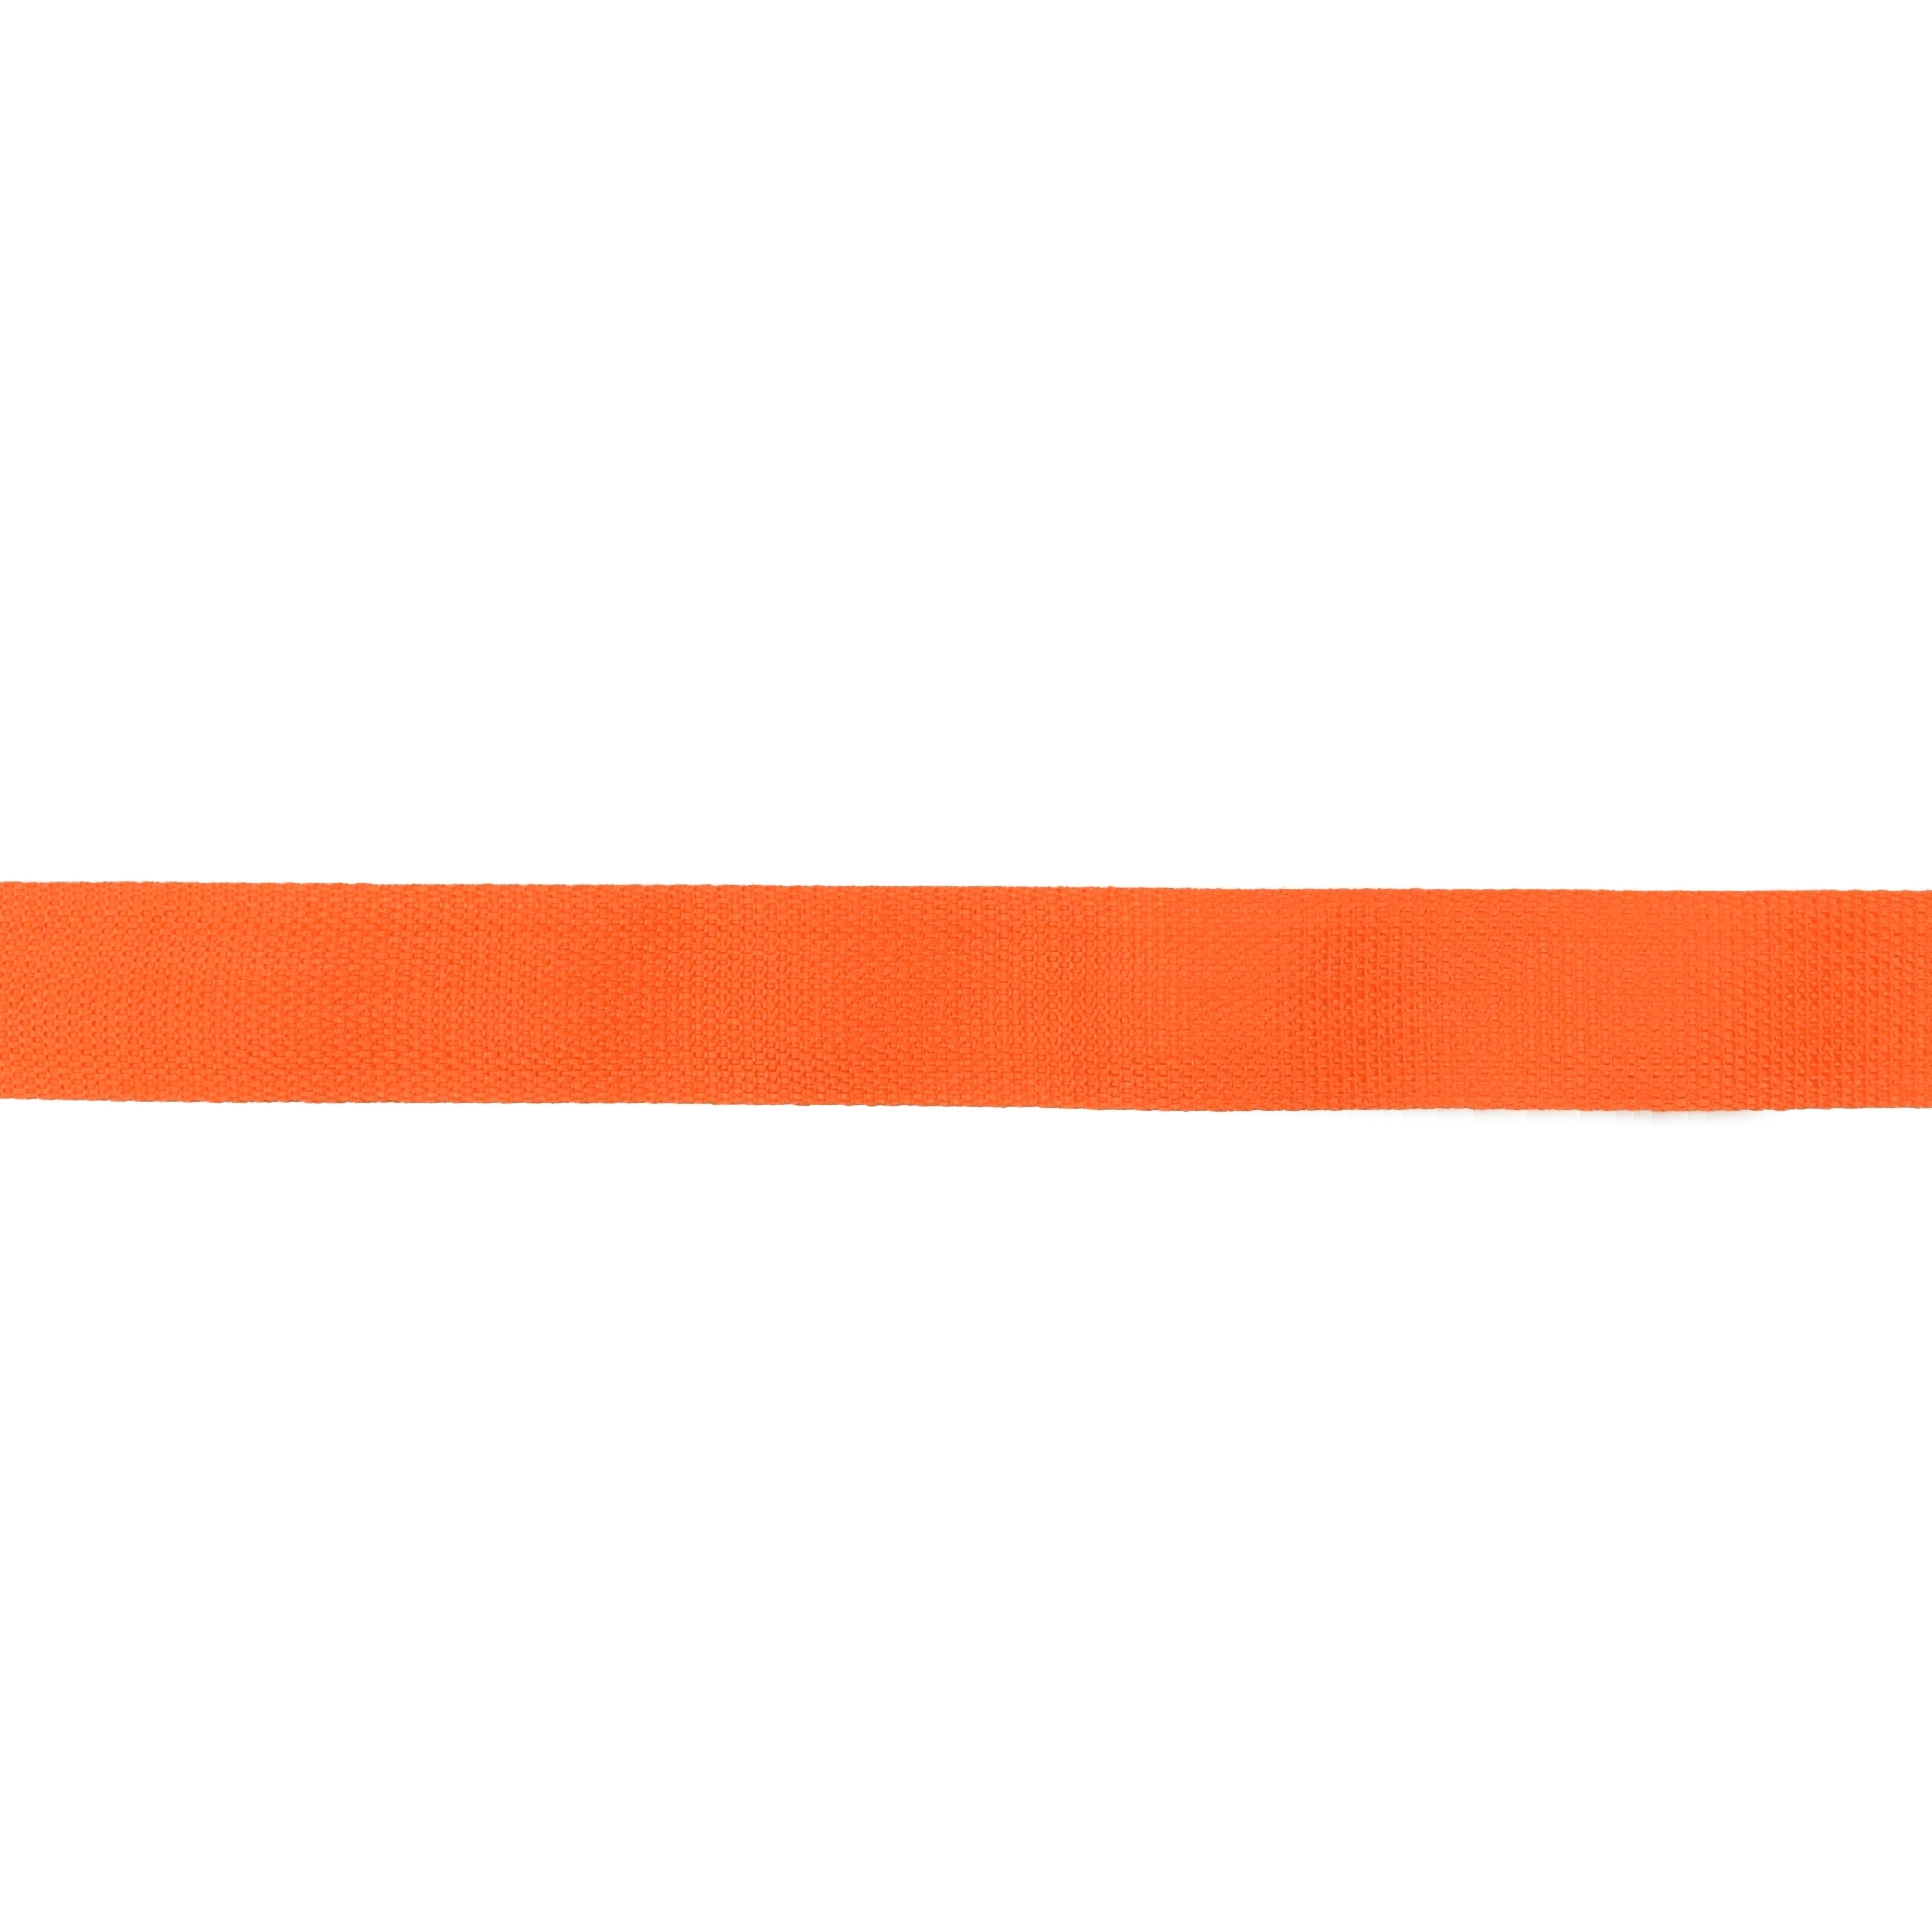 Tassen singelband oranje 40 mm | 21009 | orange